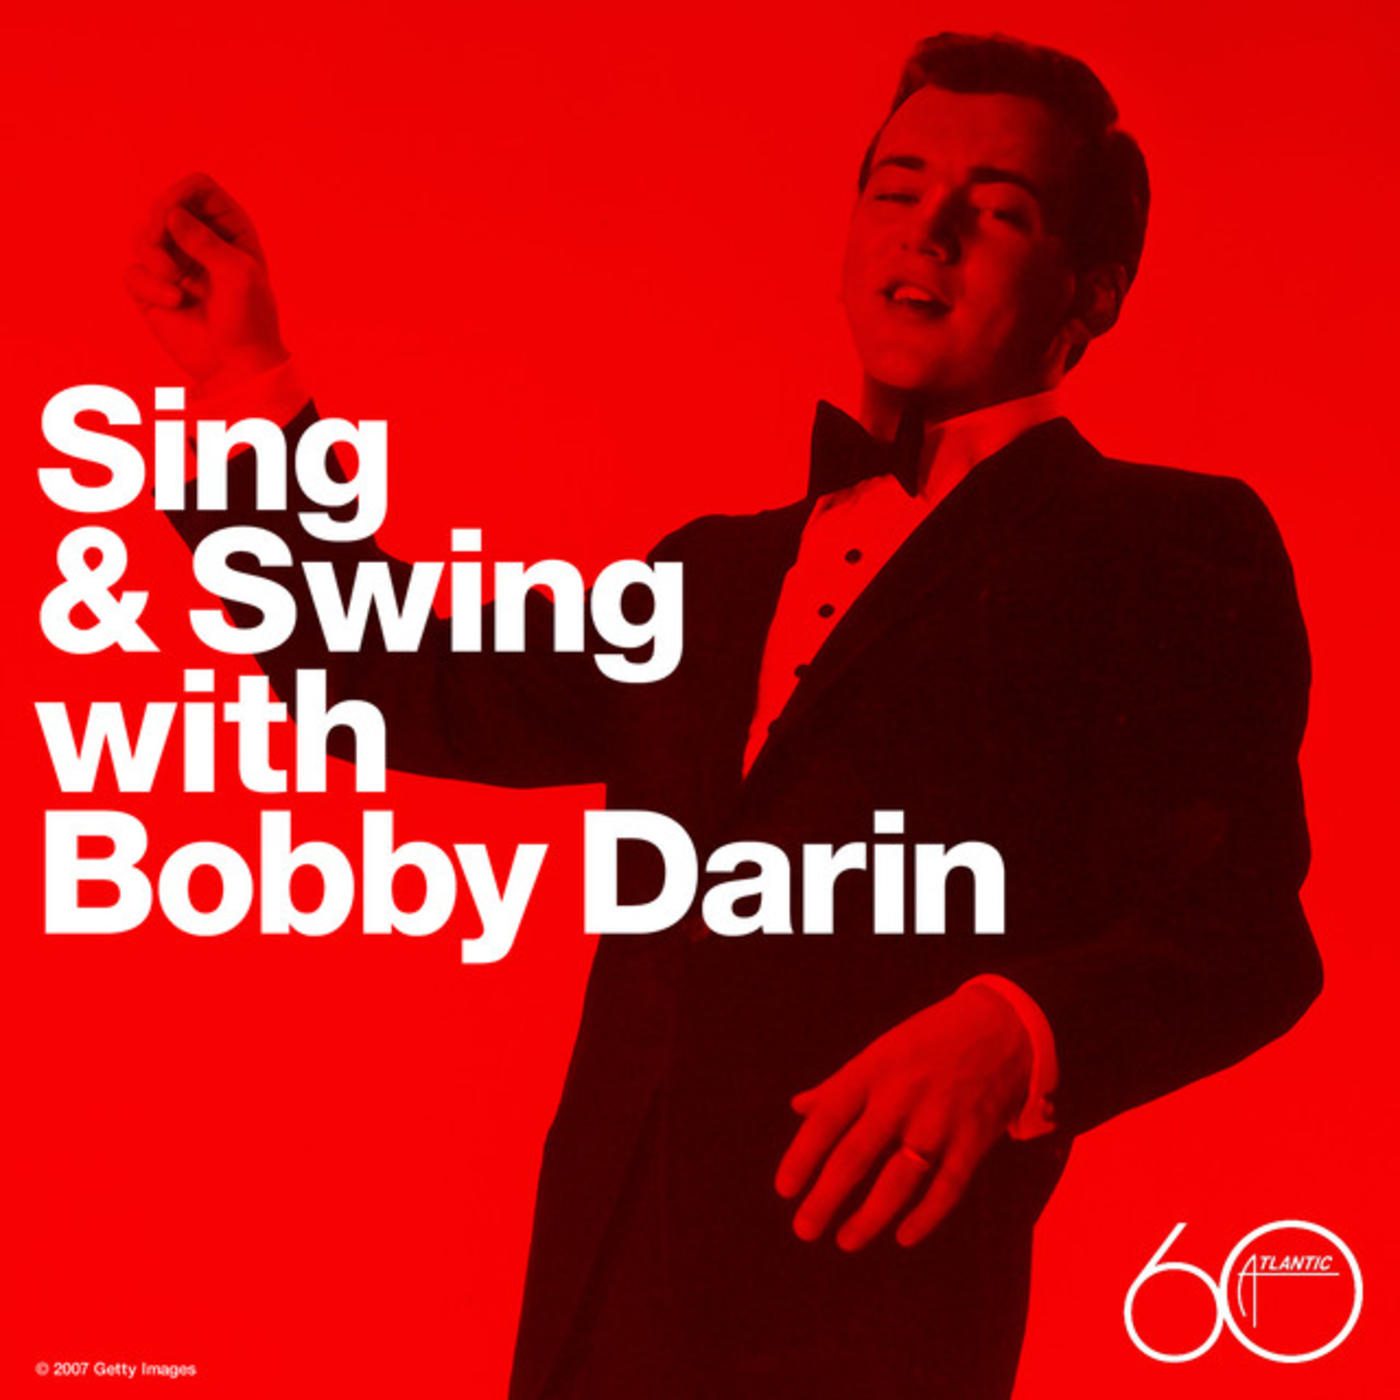 Sing & Swing With Bobby Darin